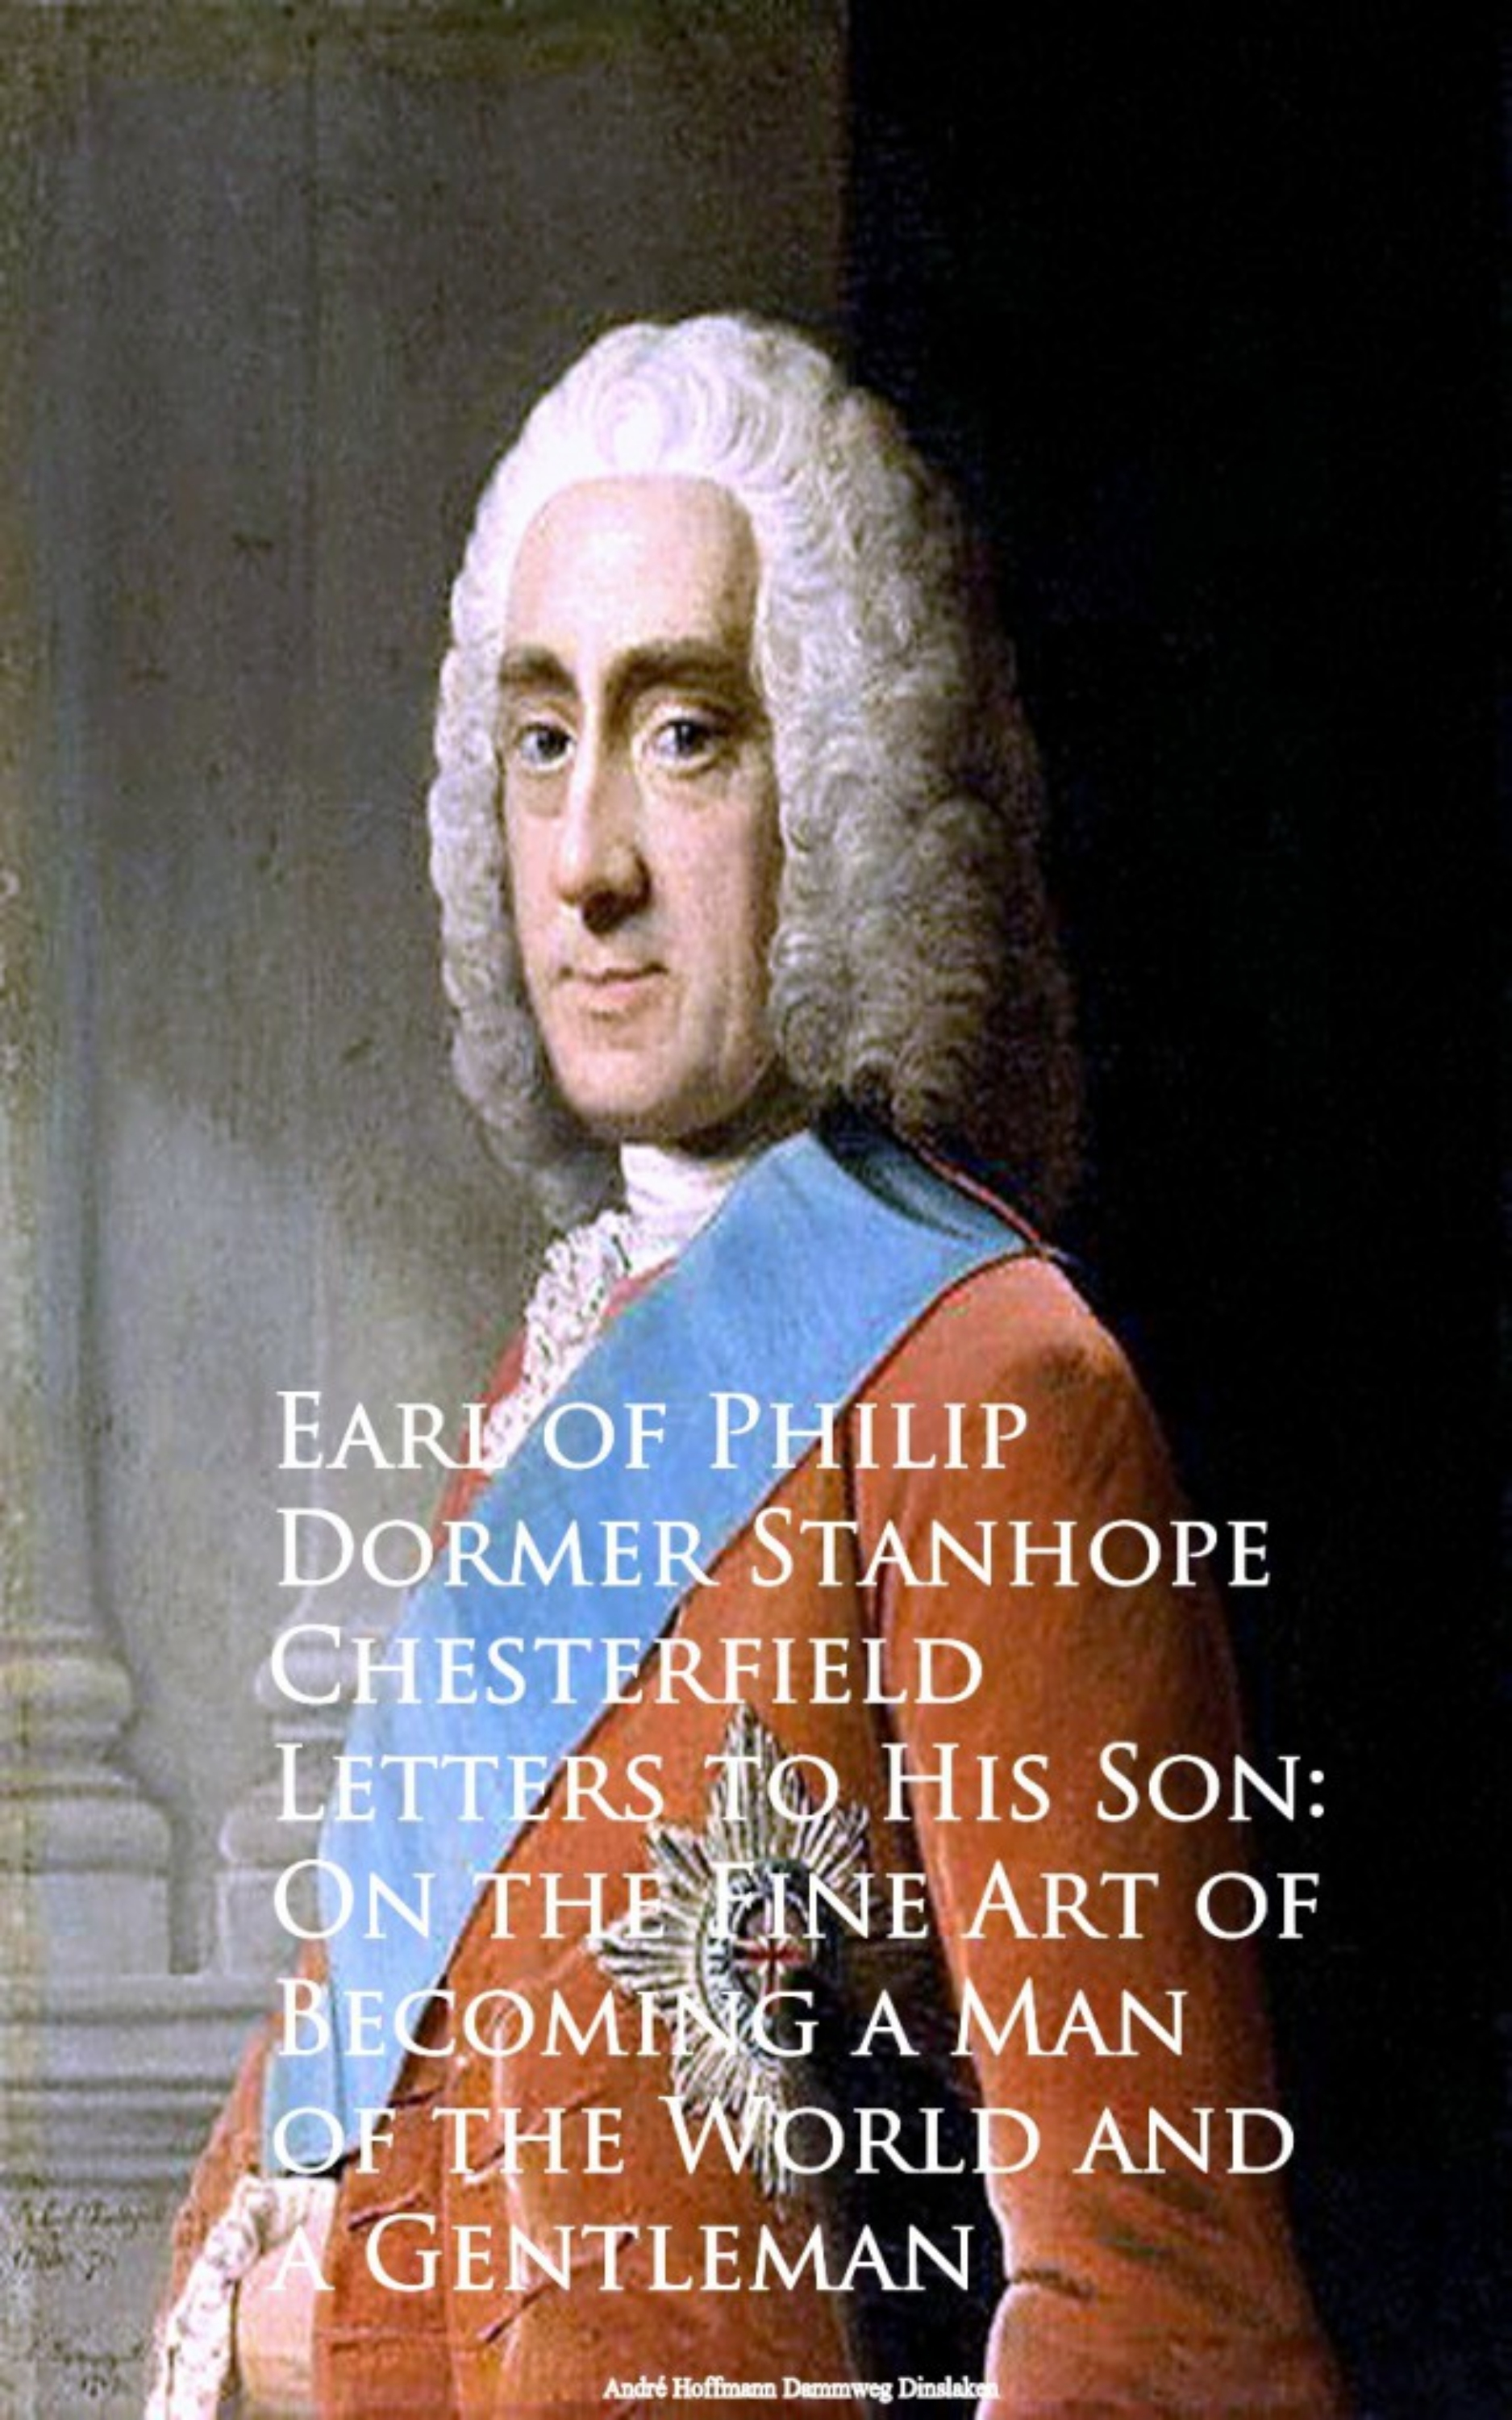 Earl of Philip Dormer Stanhope Chesterfield Letters to His Son: On the Fine Art of Becoming an philip howard the lives of philip howard earl of arundel and of anne dacres his wife ed by the duke of norfolk